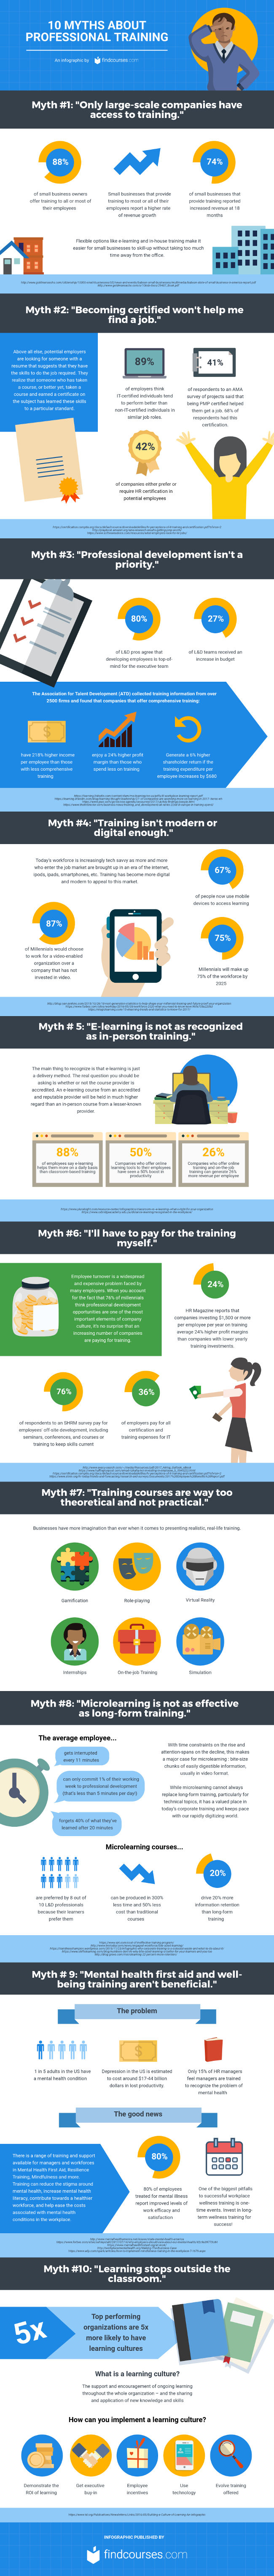 10 Myths About Professional Training Businesses Need to Know [Infographic]